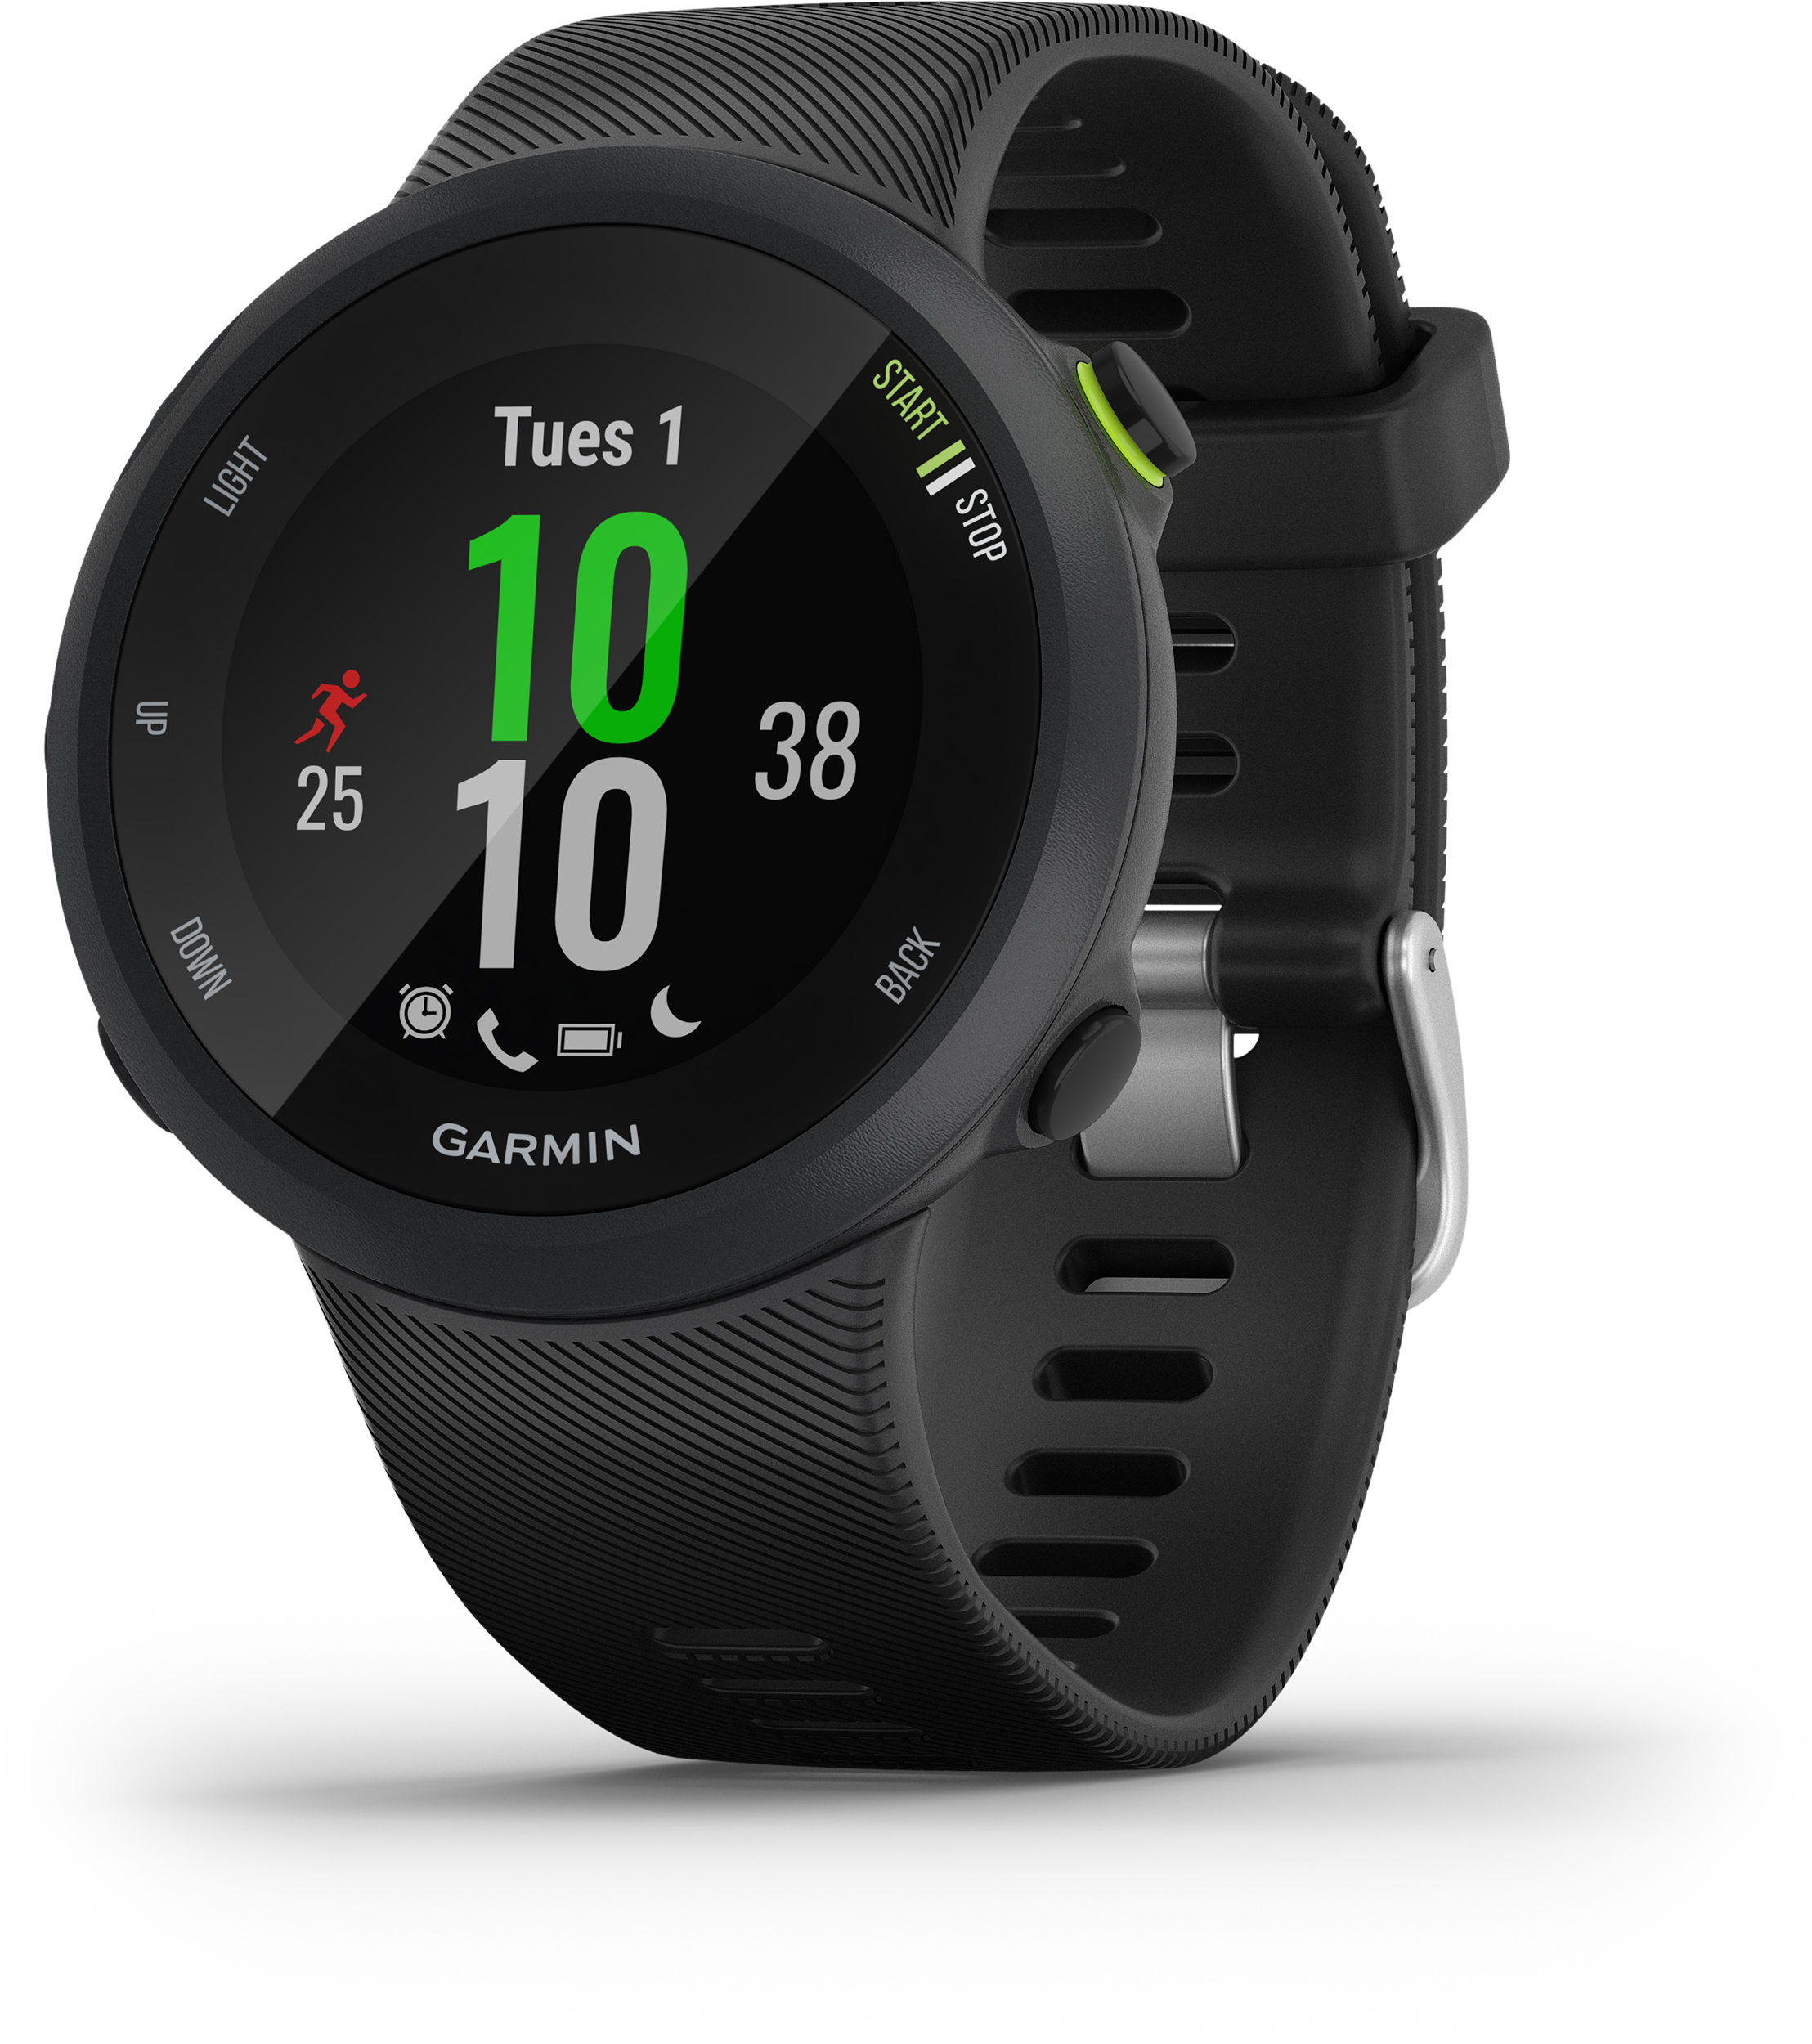 Gps Training And Navigation Watches Mec